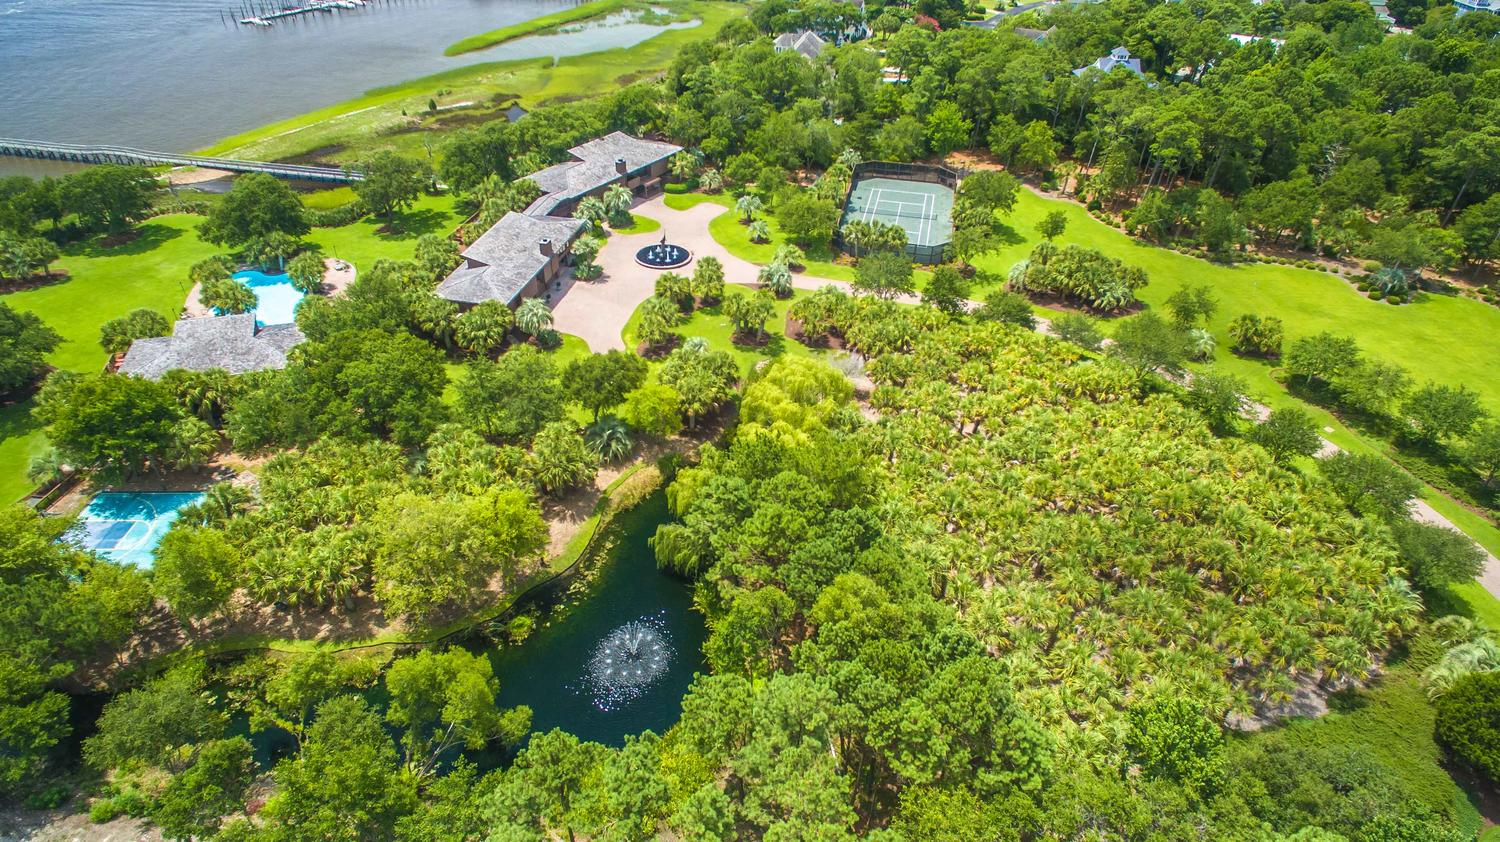 7422 Sea Lilly Ln Wilmington-large-005-164-Aerial view-1500x843-72dpi.jpg